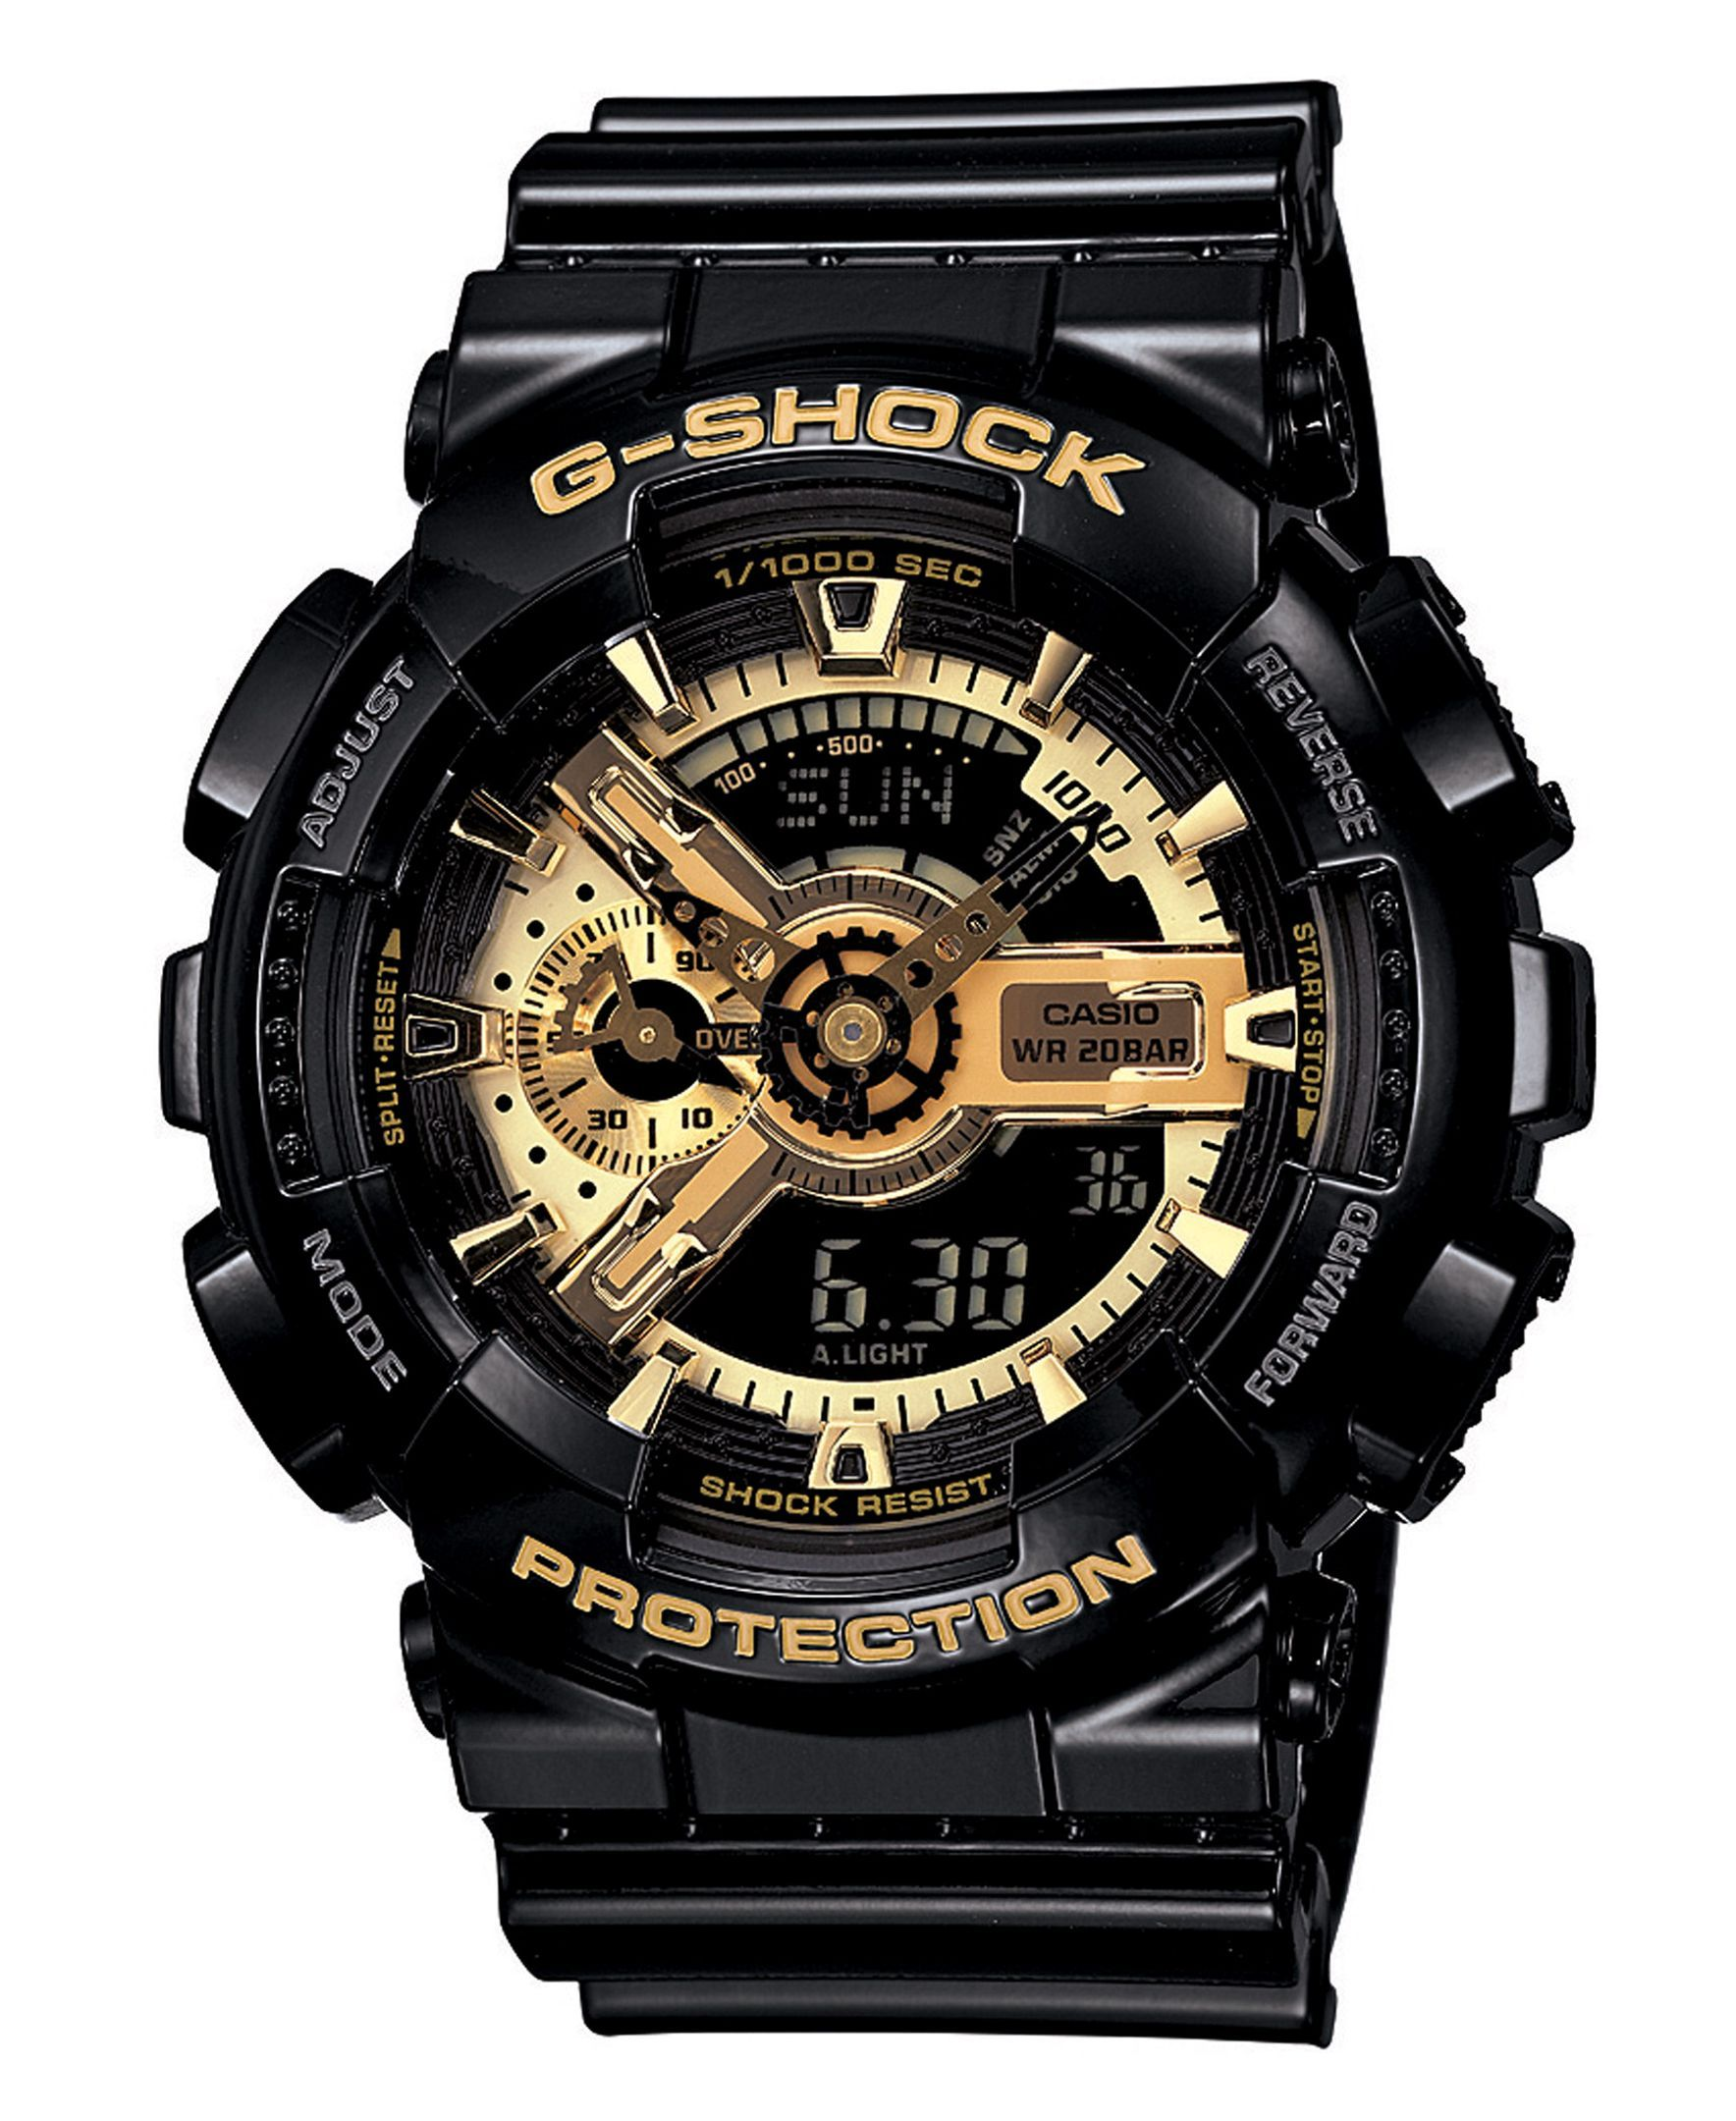 In-your-face style. There's no denying this bold watch by G-Shock. Black resin…